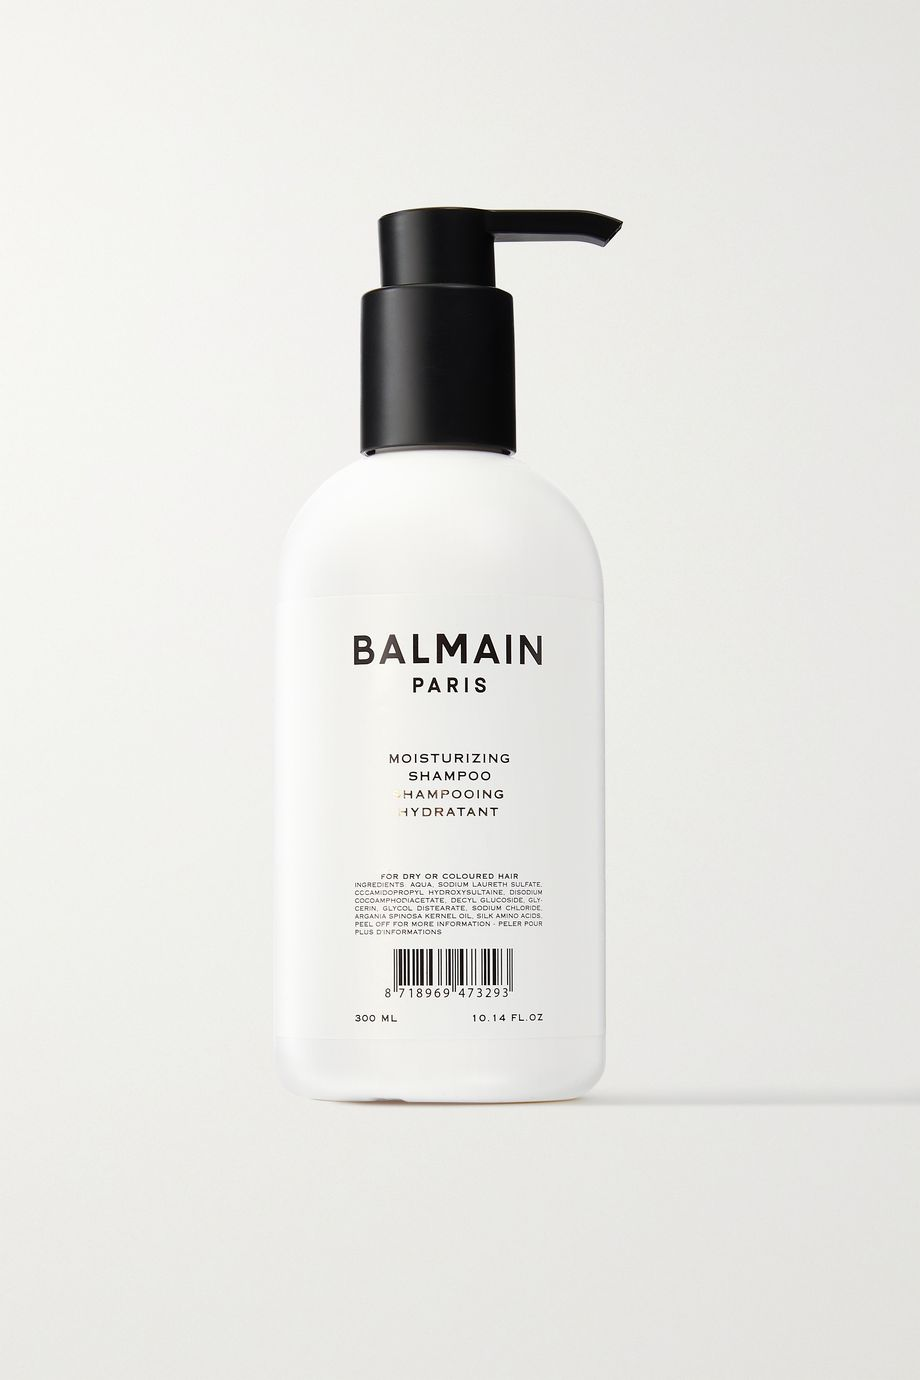 BALMAIN PARIS HAIR COUTURE Moisturizing Shampoo, 300ml